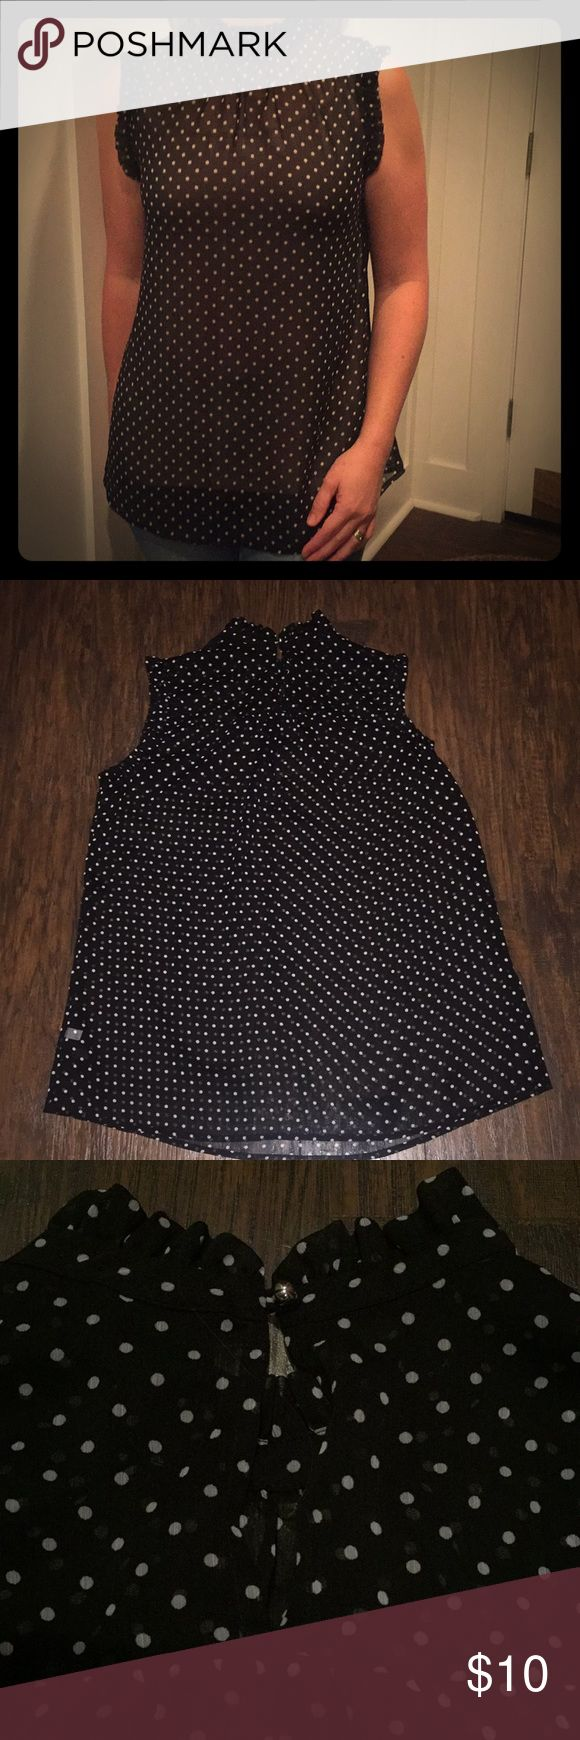 WHO WHAT WEAR BLOUSE Sheer black with white polka dots, sleeveless with ruffle trim around the neck/arm holes.  Tunic length. Keyhole button in the back. I'm wearing a nude cami underneath (not included) WHO WHAT WEAR Tops Blouses